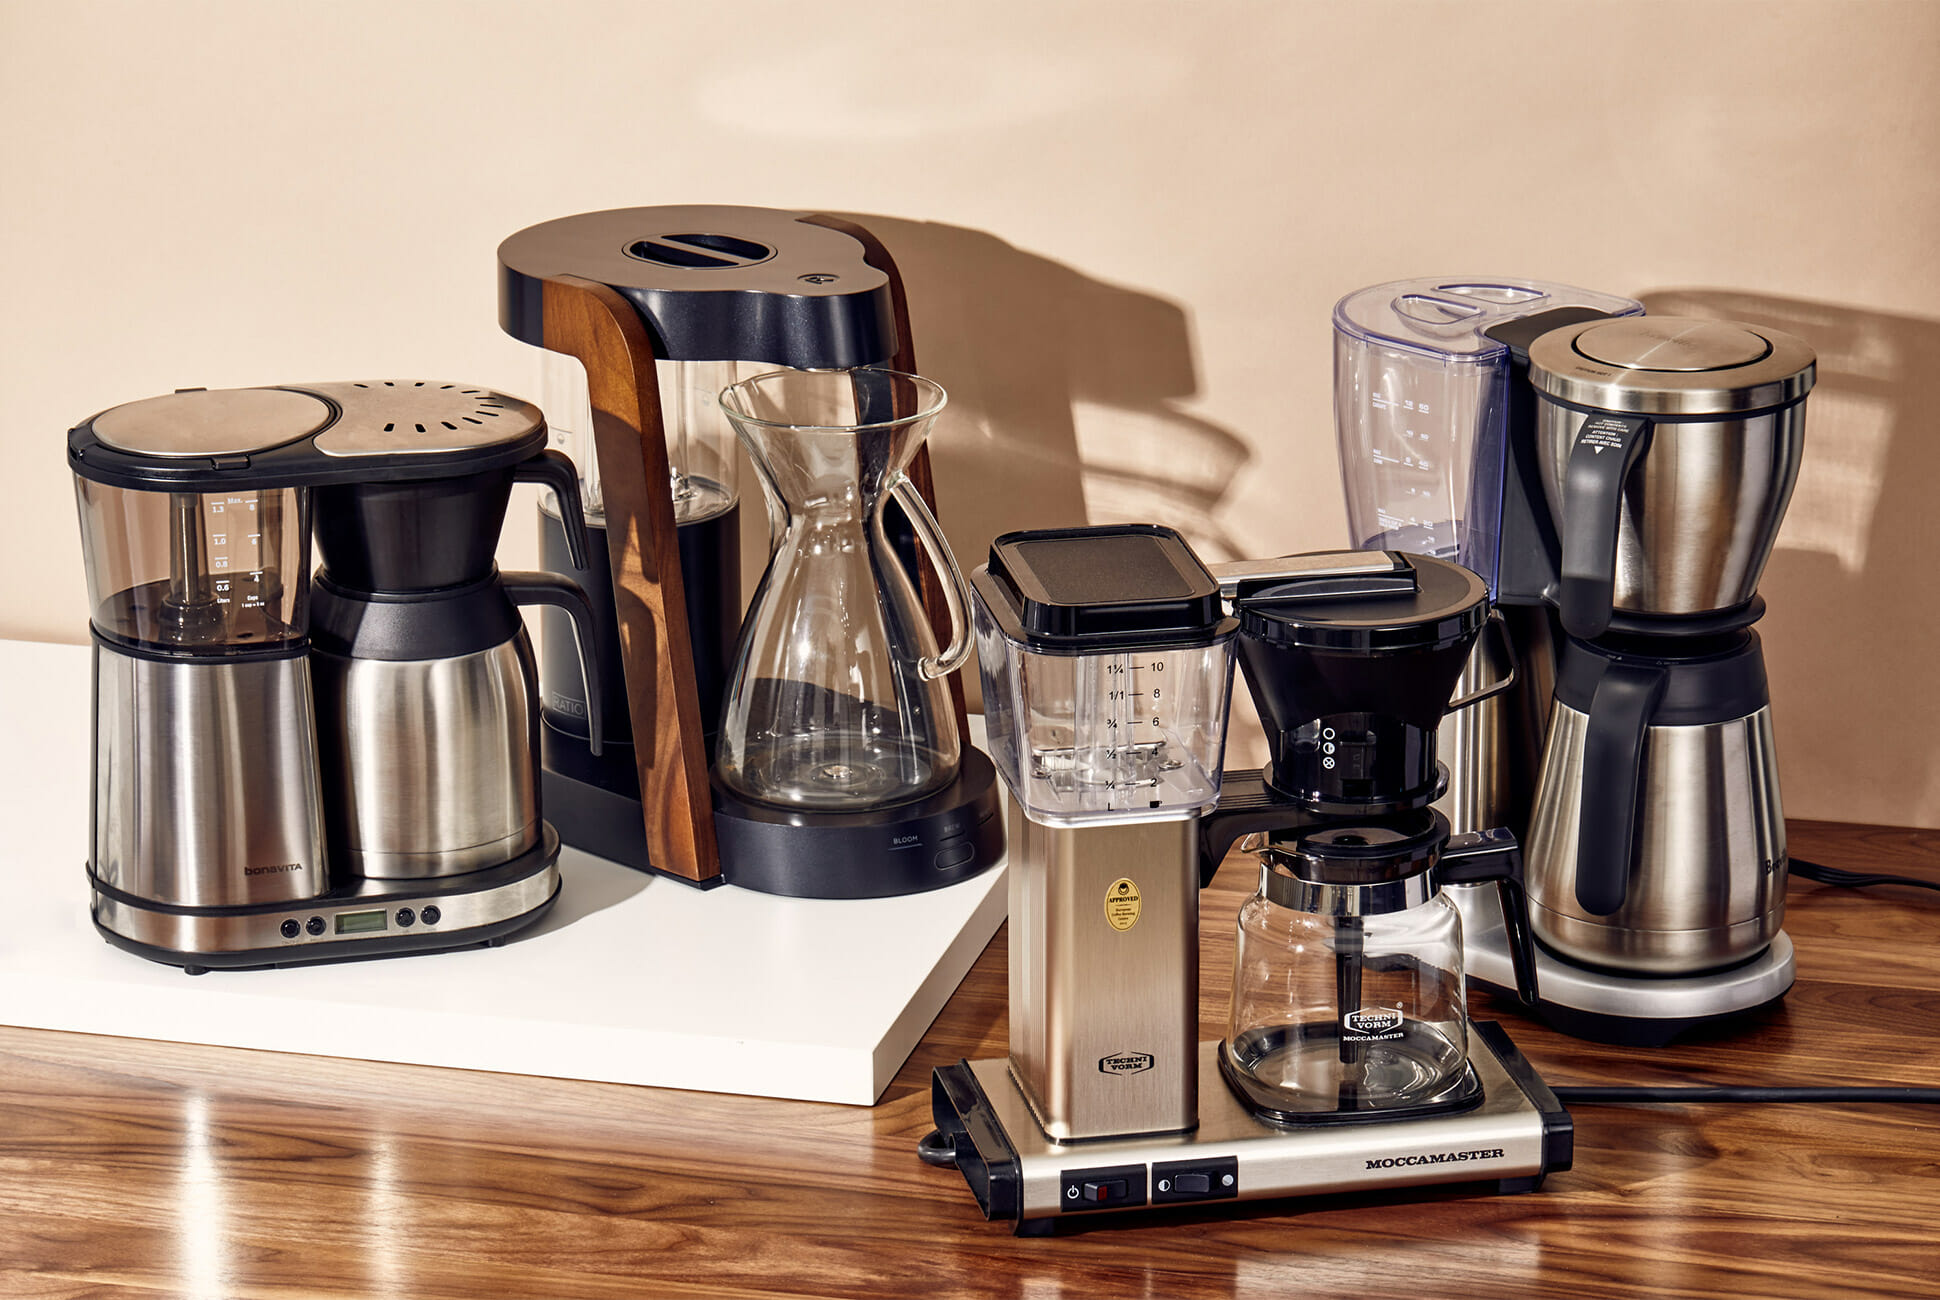 Cheap Vs High-End Coffee Makers